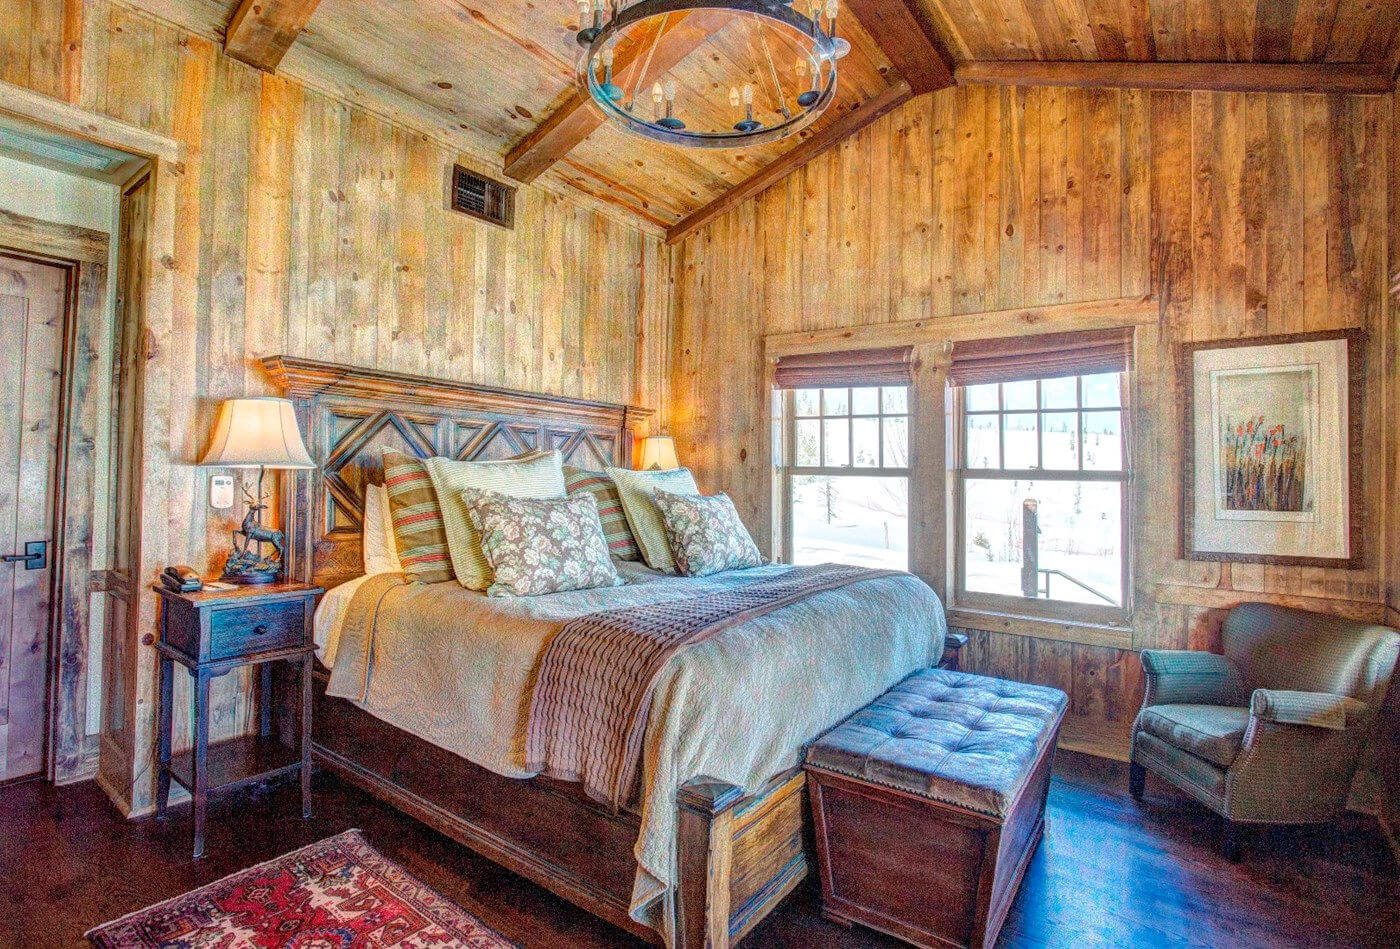 High Lonesome Lodge Suite at Devil's Thumb Ranch. Photo via Devil's Thumb Ranch